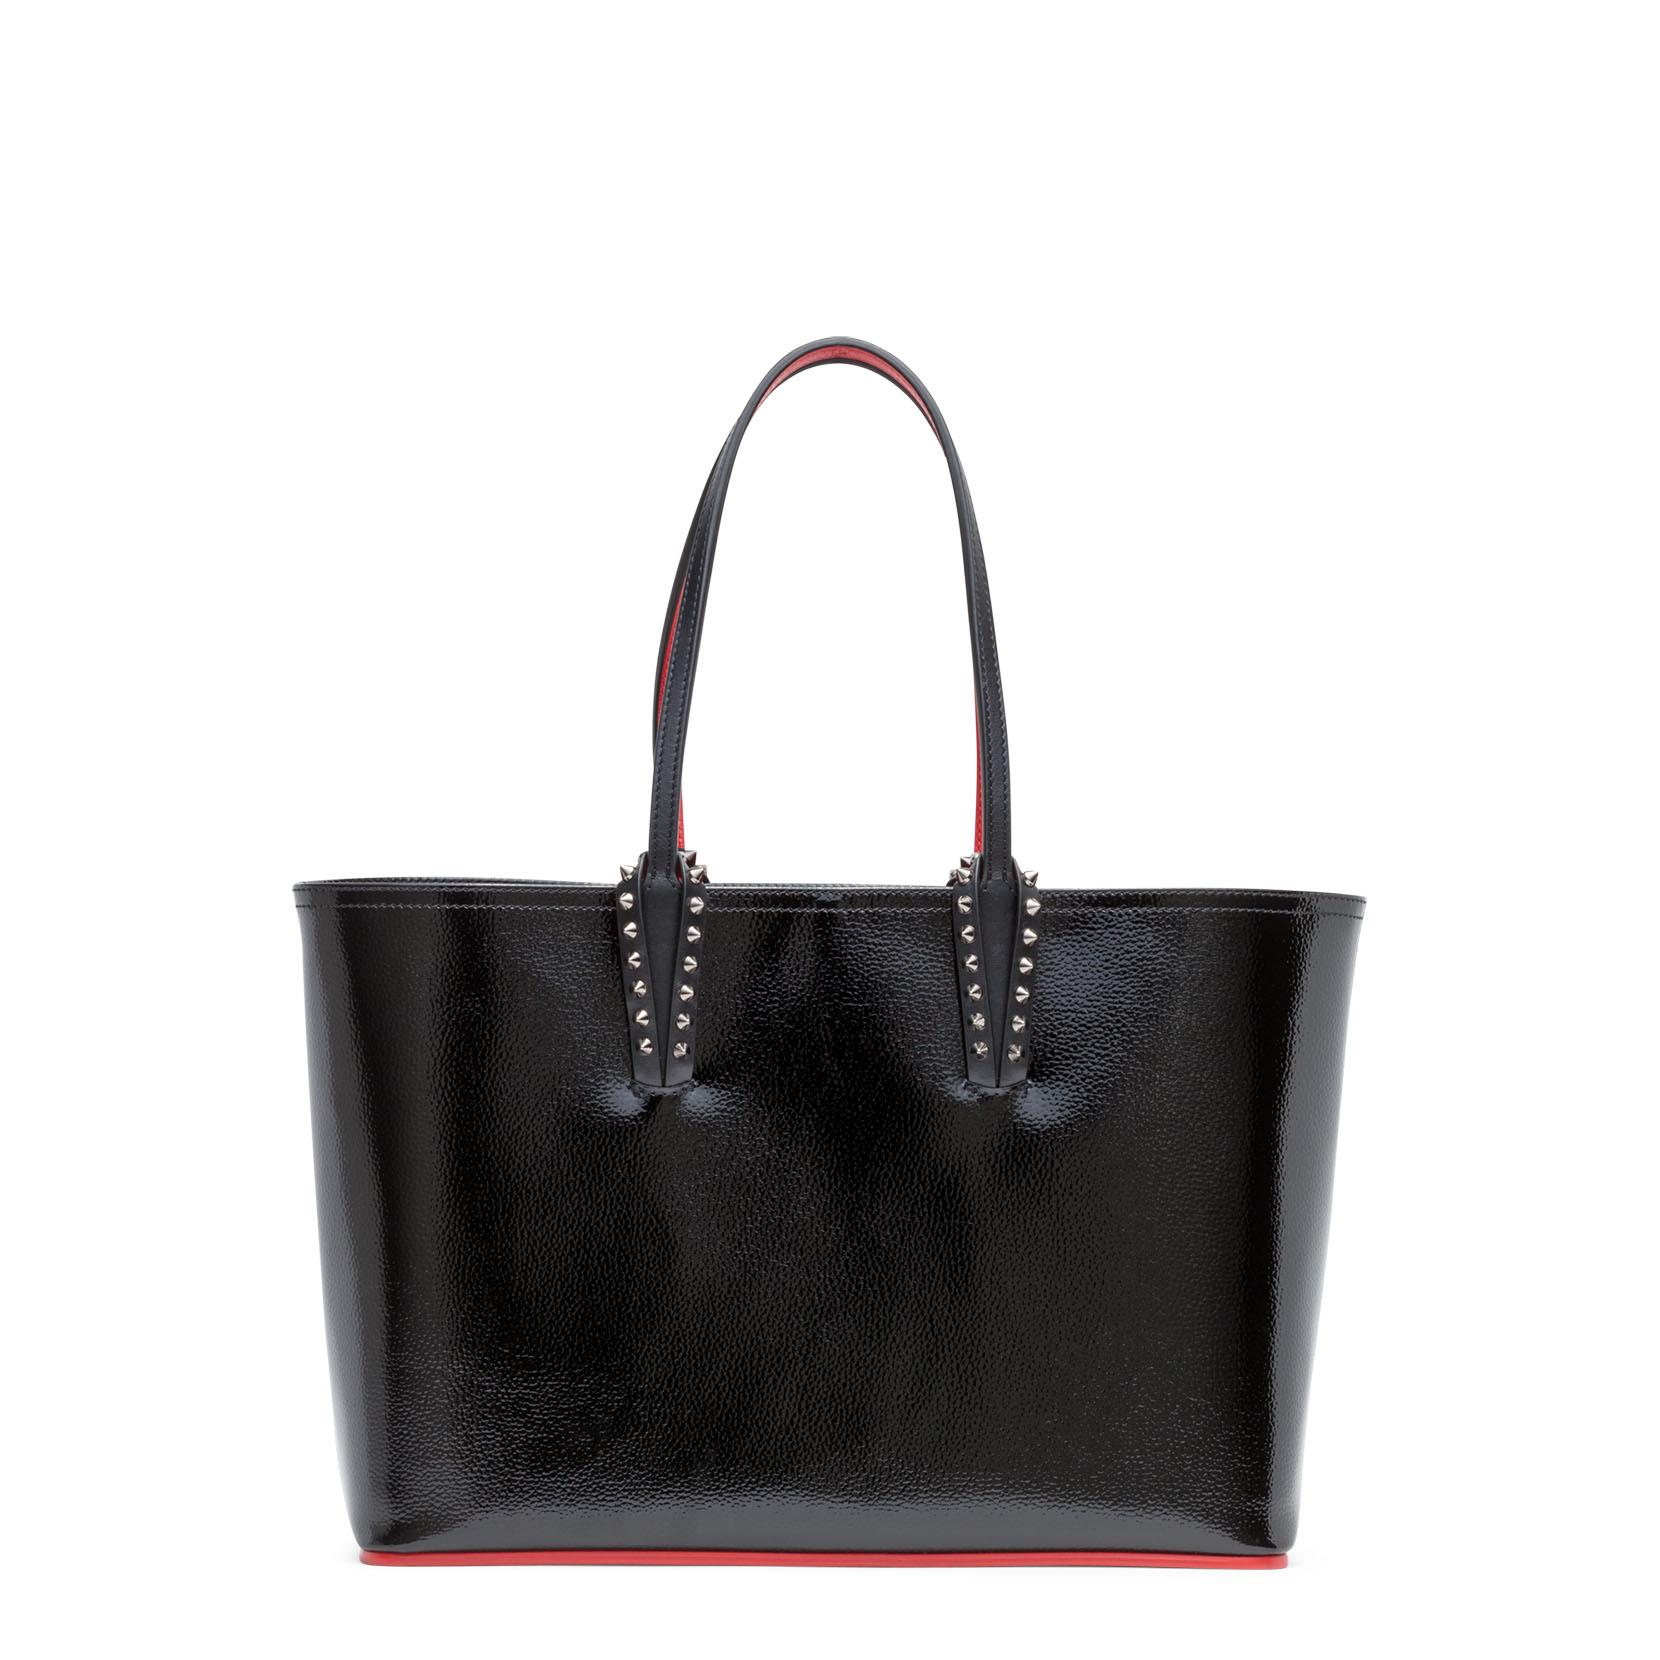 05ebcd84761b Christian Louboutin Cabata Small Black Patent Leather Tote Bag ...